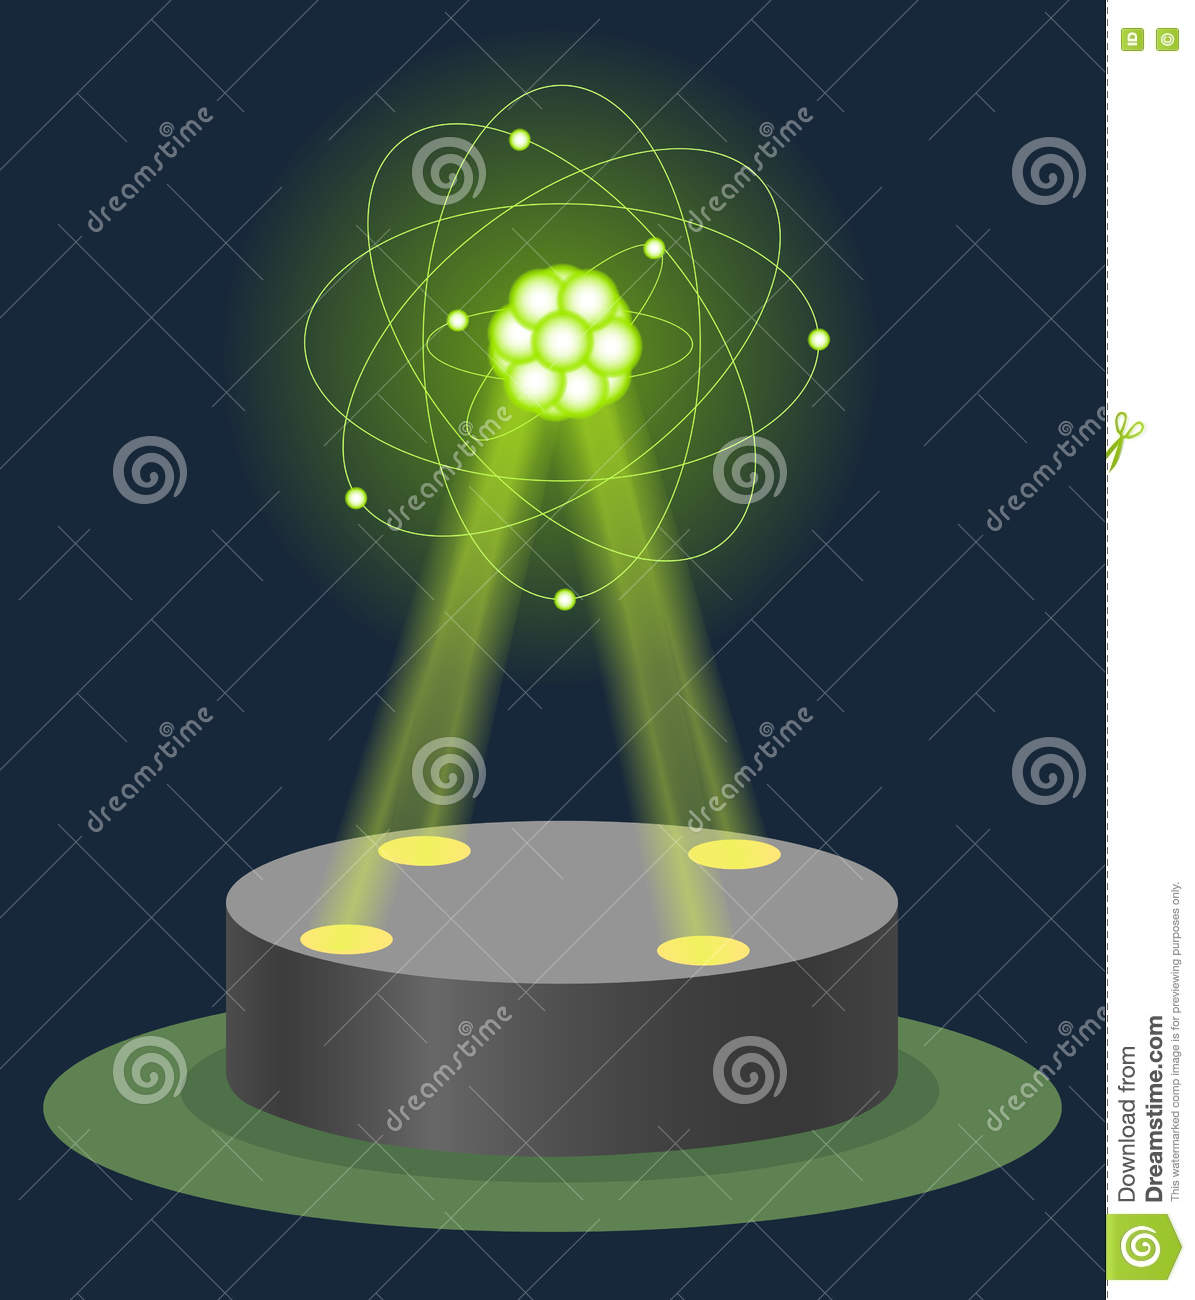 Exploring The Science Of Light 35 Illuminating: Innovation Museum Carbon Atom Structure Hologram On